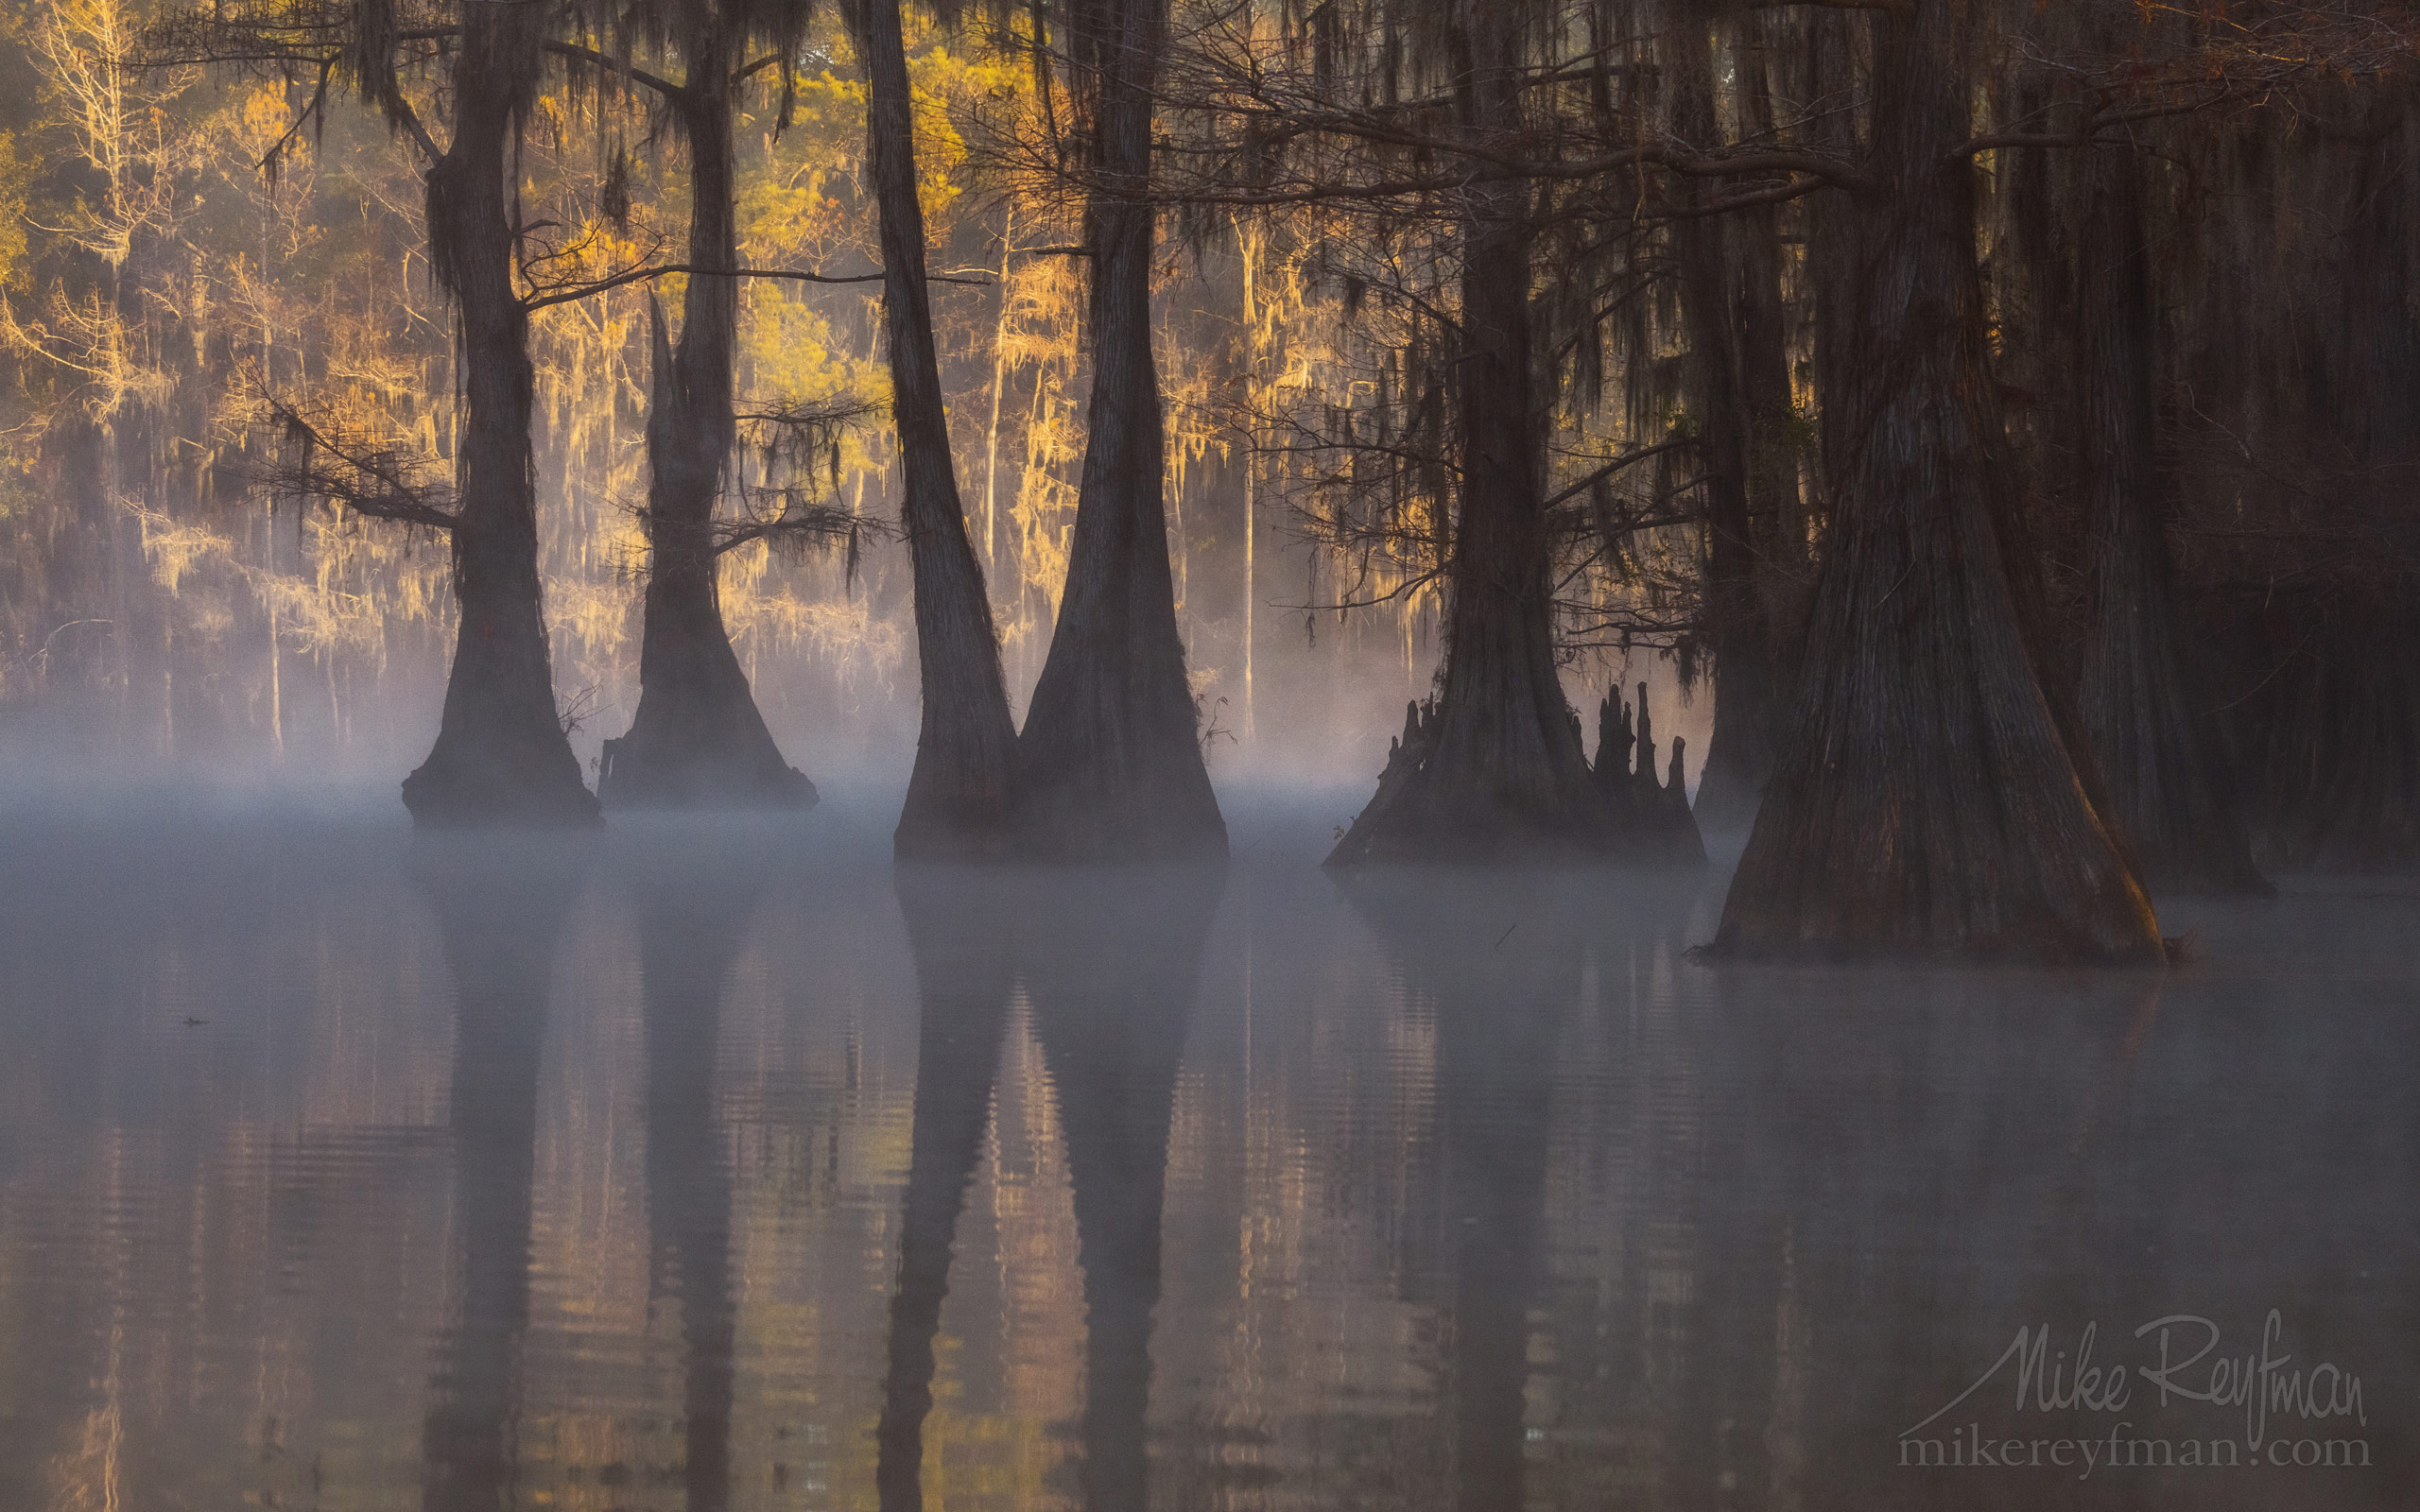 Bald Cypress trees in the swamp. Foggy morning on Caddo Lake, Texas, US 030-LT1-50A3351.jpg - Bold Cypress and Tupelo Trees in the swamps of Atchafalaya River Basin. Caddo, Martin and Fousse Lakes. Texas/Louisiana, USA. - Mike Reyfman Photography